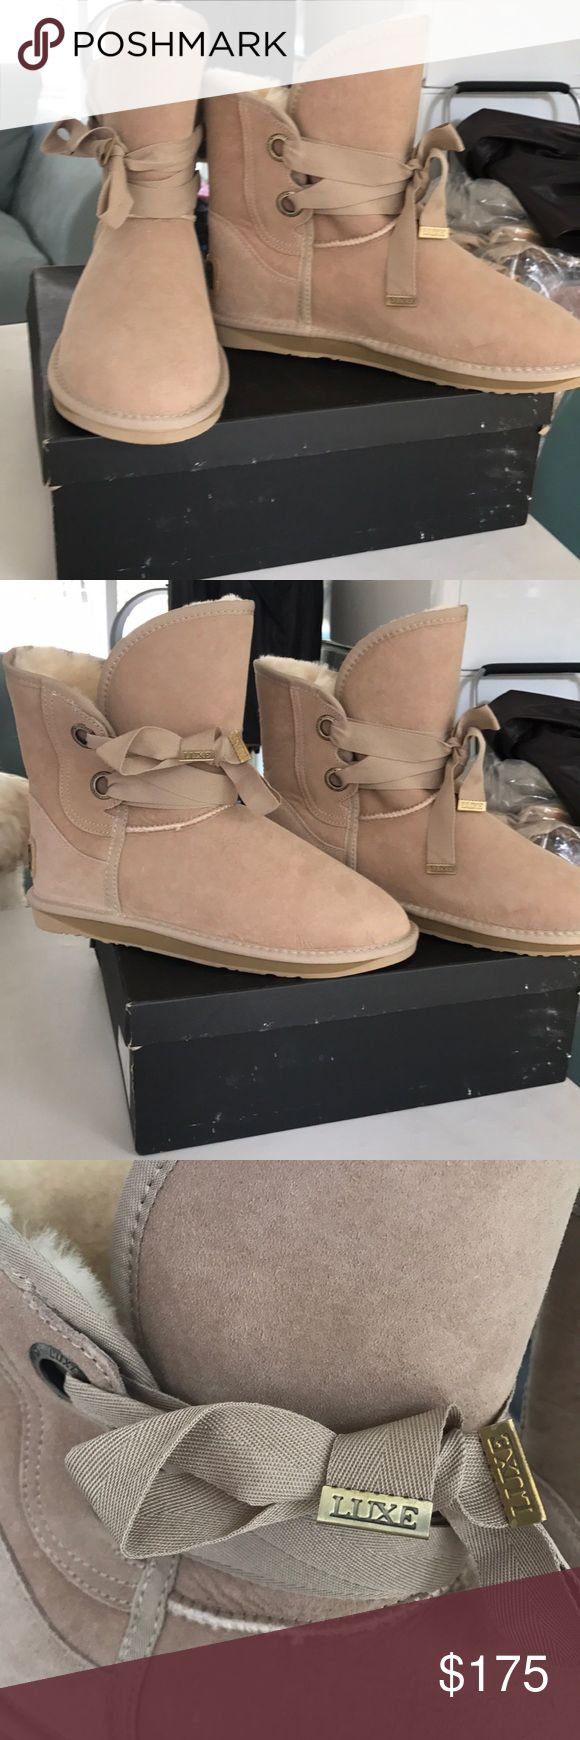 🇺🇸saleNew Australia Luxe Bedouin short boot 11 Beautiful new in box AUSTRALIA LUXE COLLECTIVE  Bedouin short boot in sand color size 11. Box has some damage *price firm Australia Luxe Collective Shoes Winter & Rain Boots